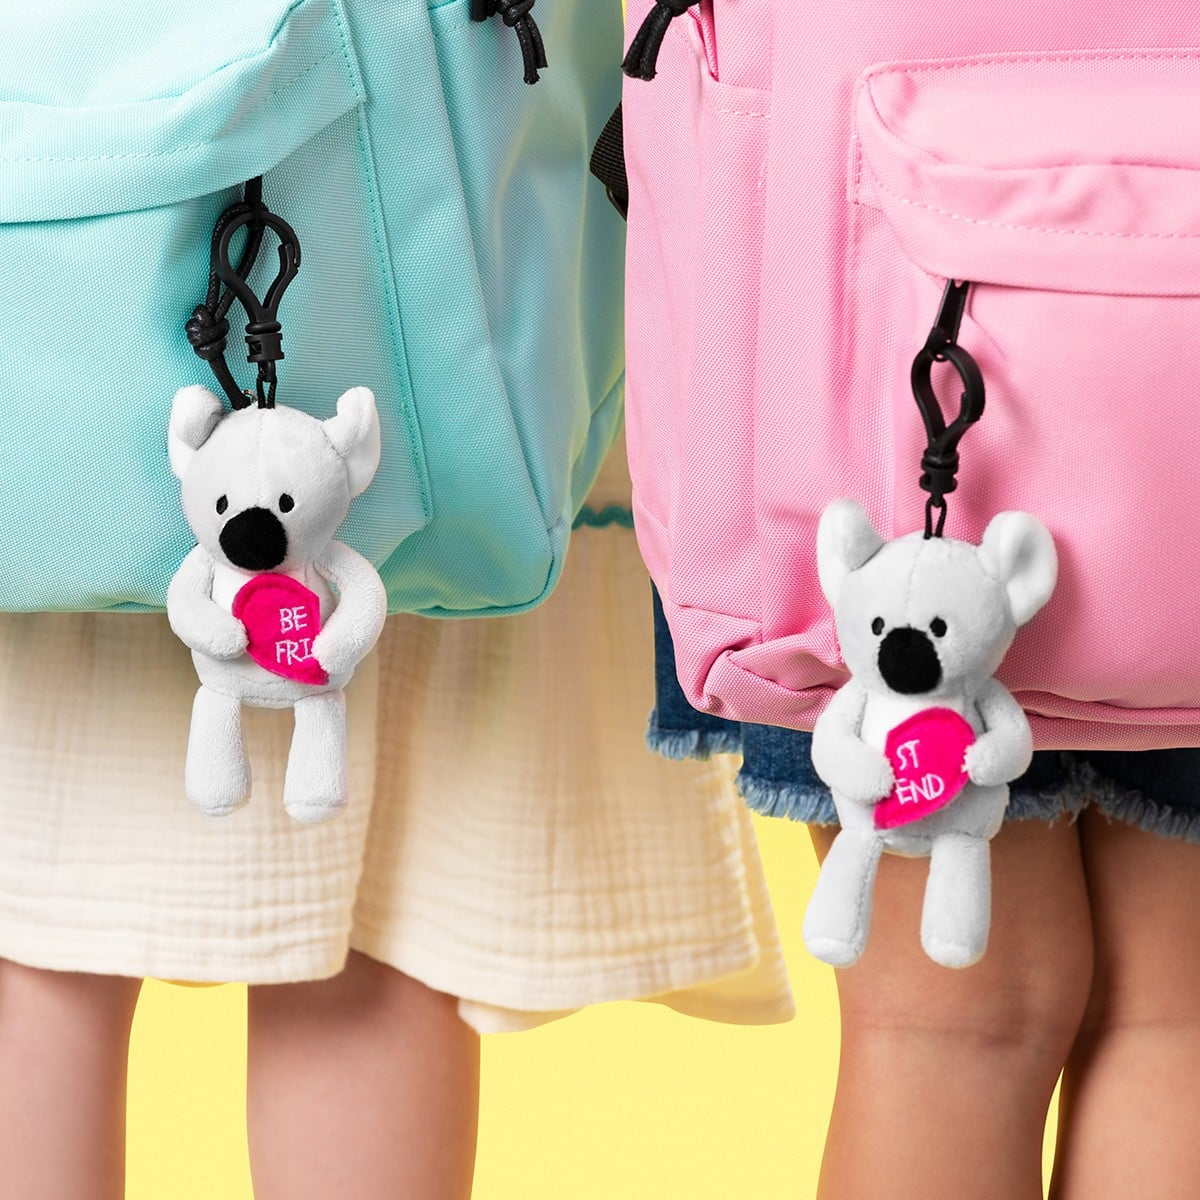 Scentsy Best Friends Buddy Clips1 1